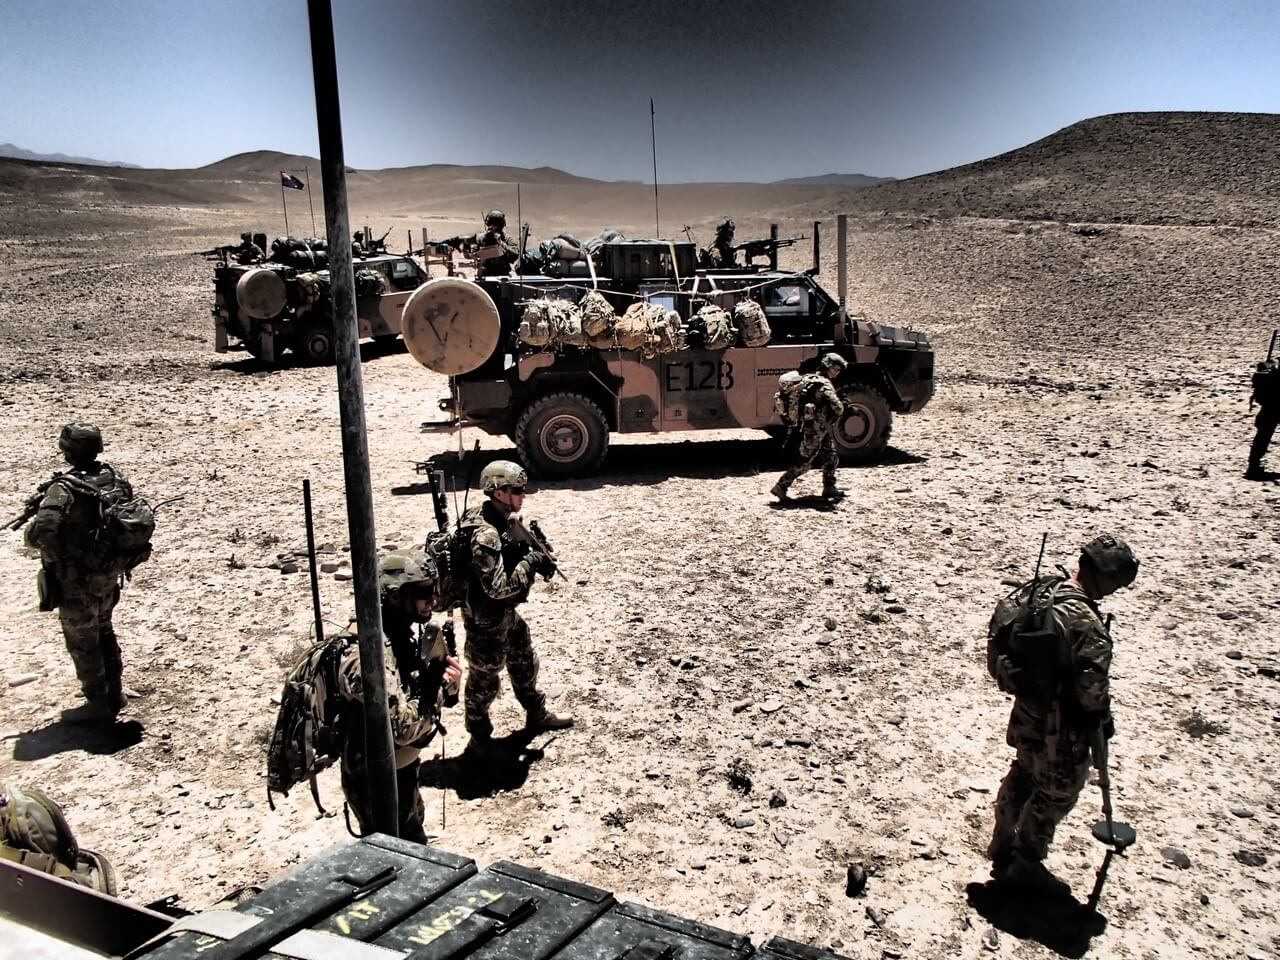 5 Section, 2 Troop and LT Matthew Scott (2 TP COMD) during a 107mm Rocket point of origin exploitation in Afghanistan, 2013.